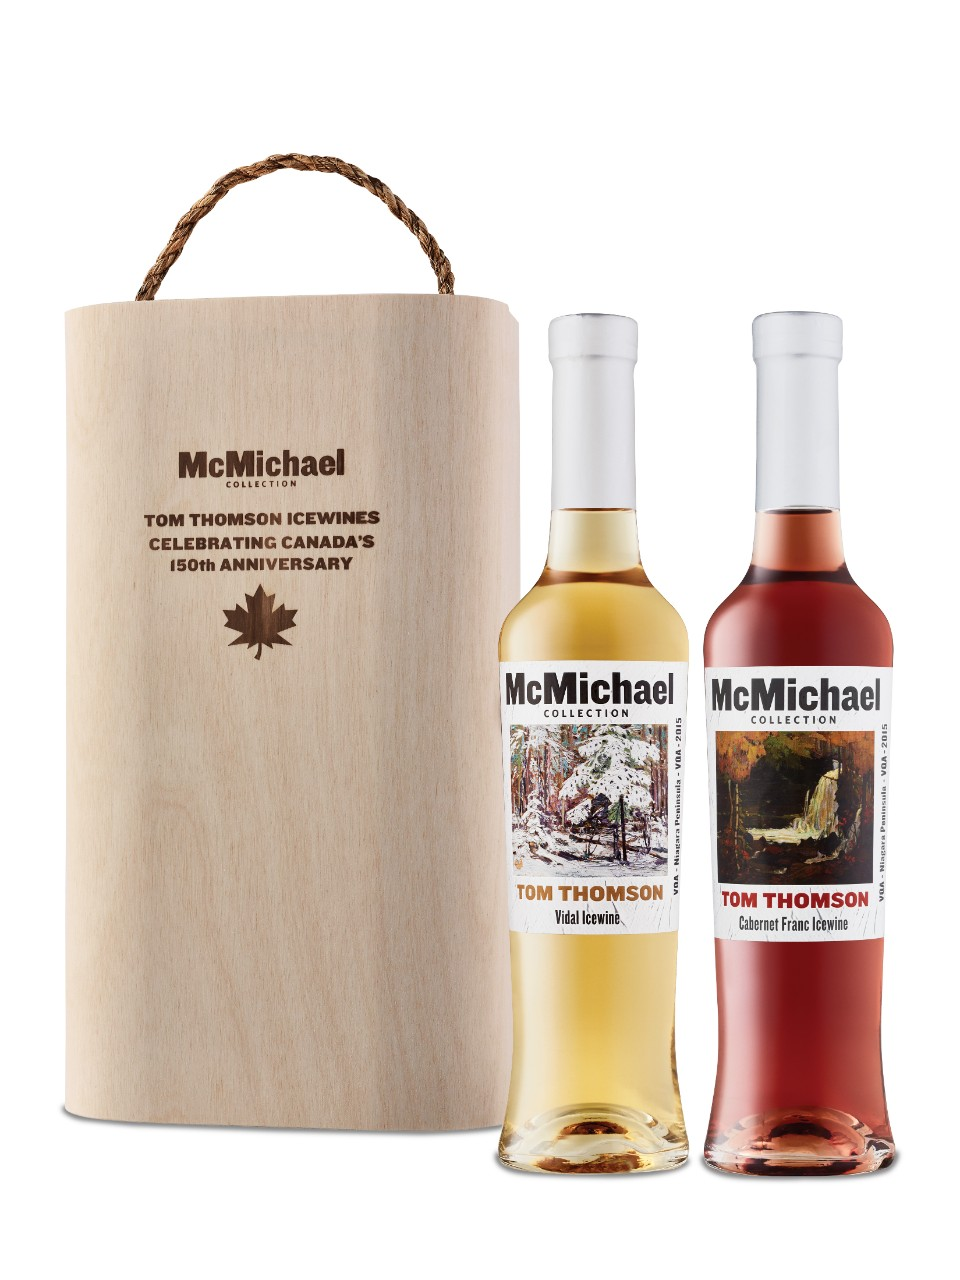 Image for McMichael Collection Tom Thomson Cabernet Franc Icewine & Vidal Icewine Gift Pack 2015 from LCBO